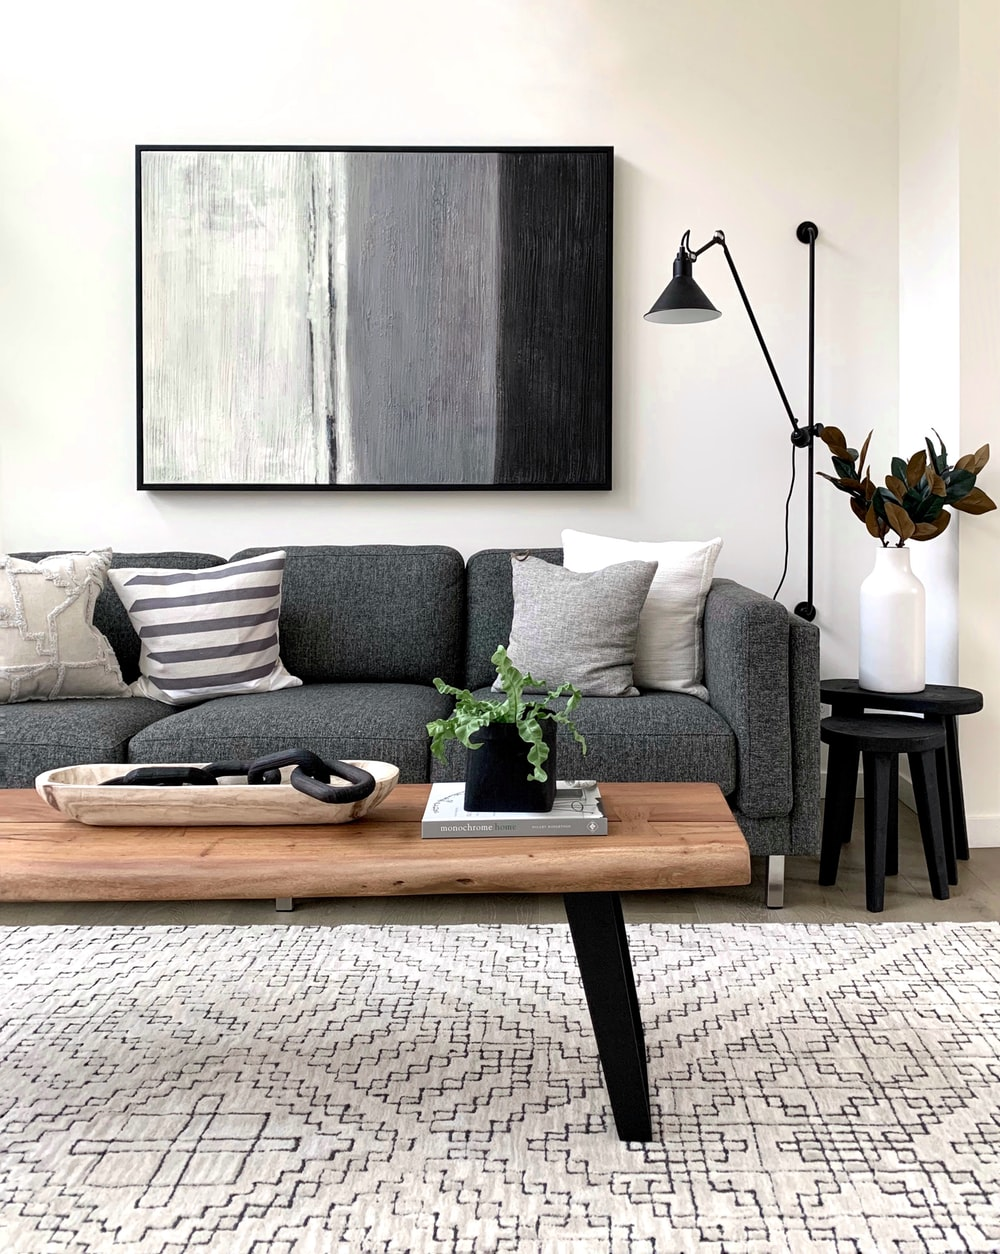 black and white throw pillows on gray couch